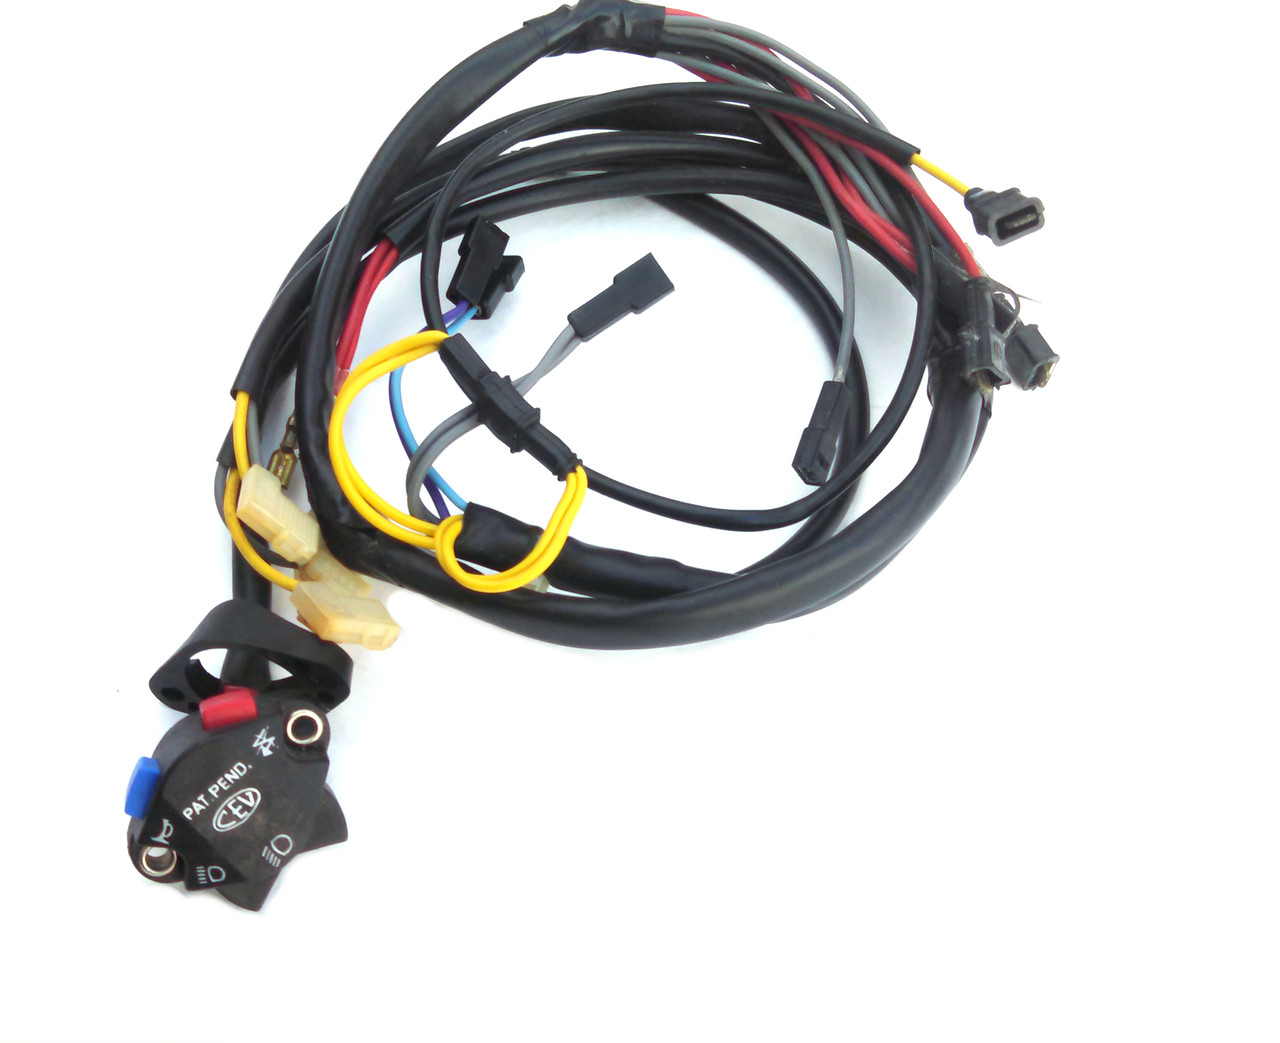 hight resolution of nos foxi ktm moped cev wiring harness and switch